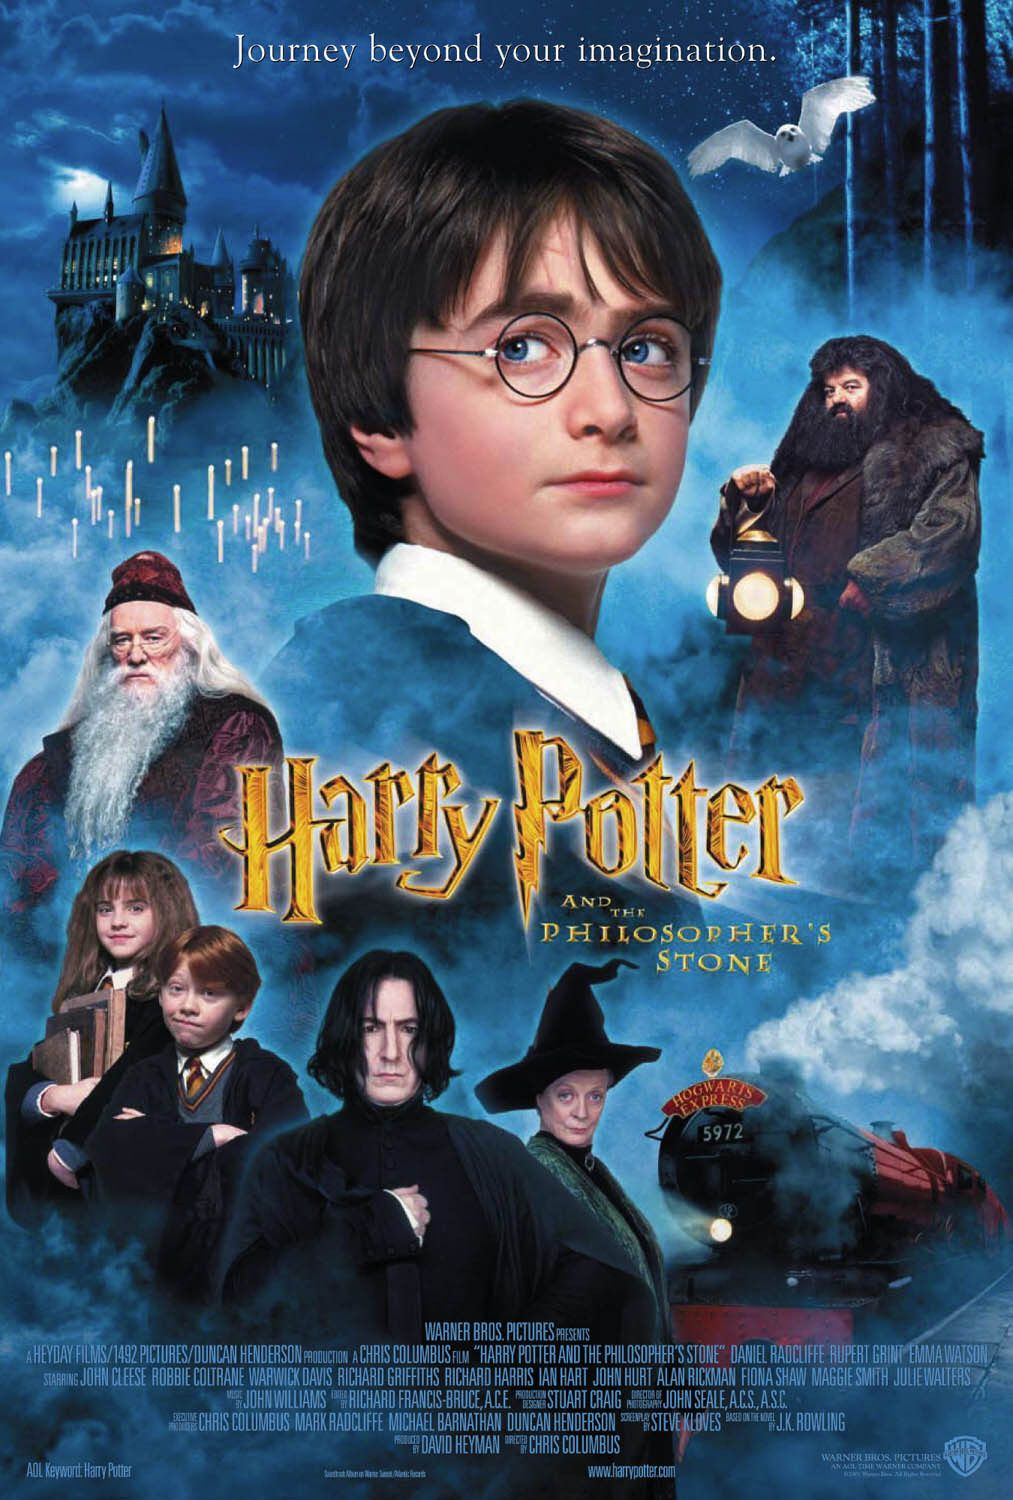 harry potter and the sorcerors stone Get an answer for 'how does jk rowling's use symbolism in harry potter and the sorcerer's stone' and find homework help for other harry potter and the sorcerer's stone questions at enotes.